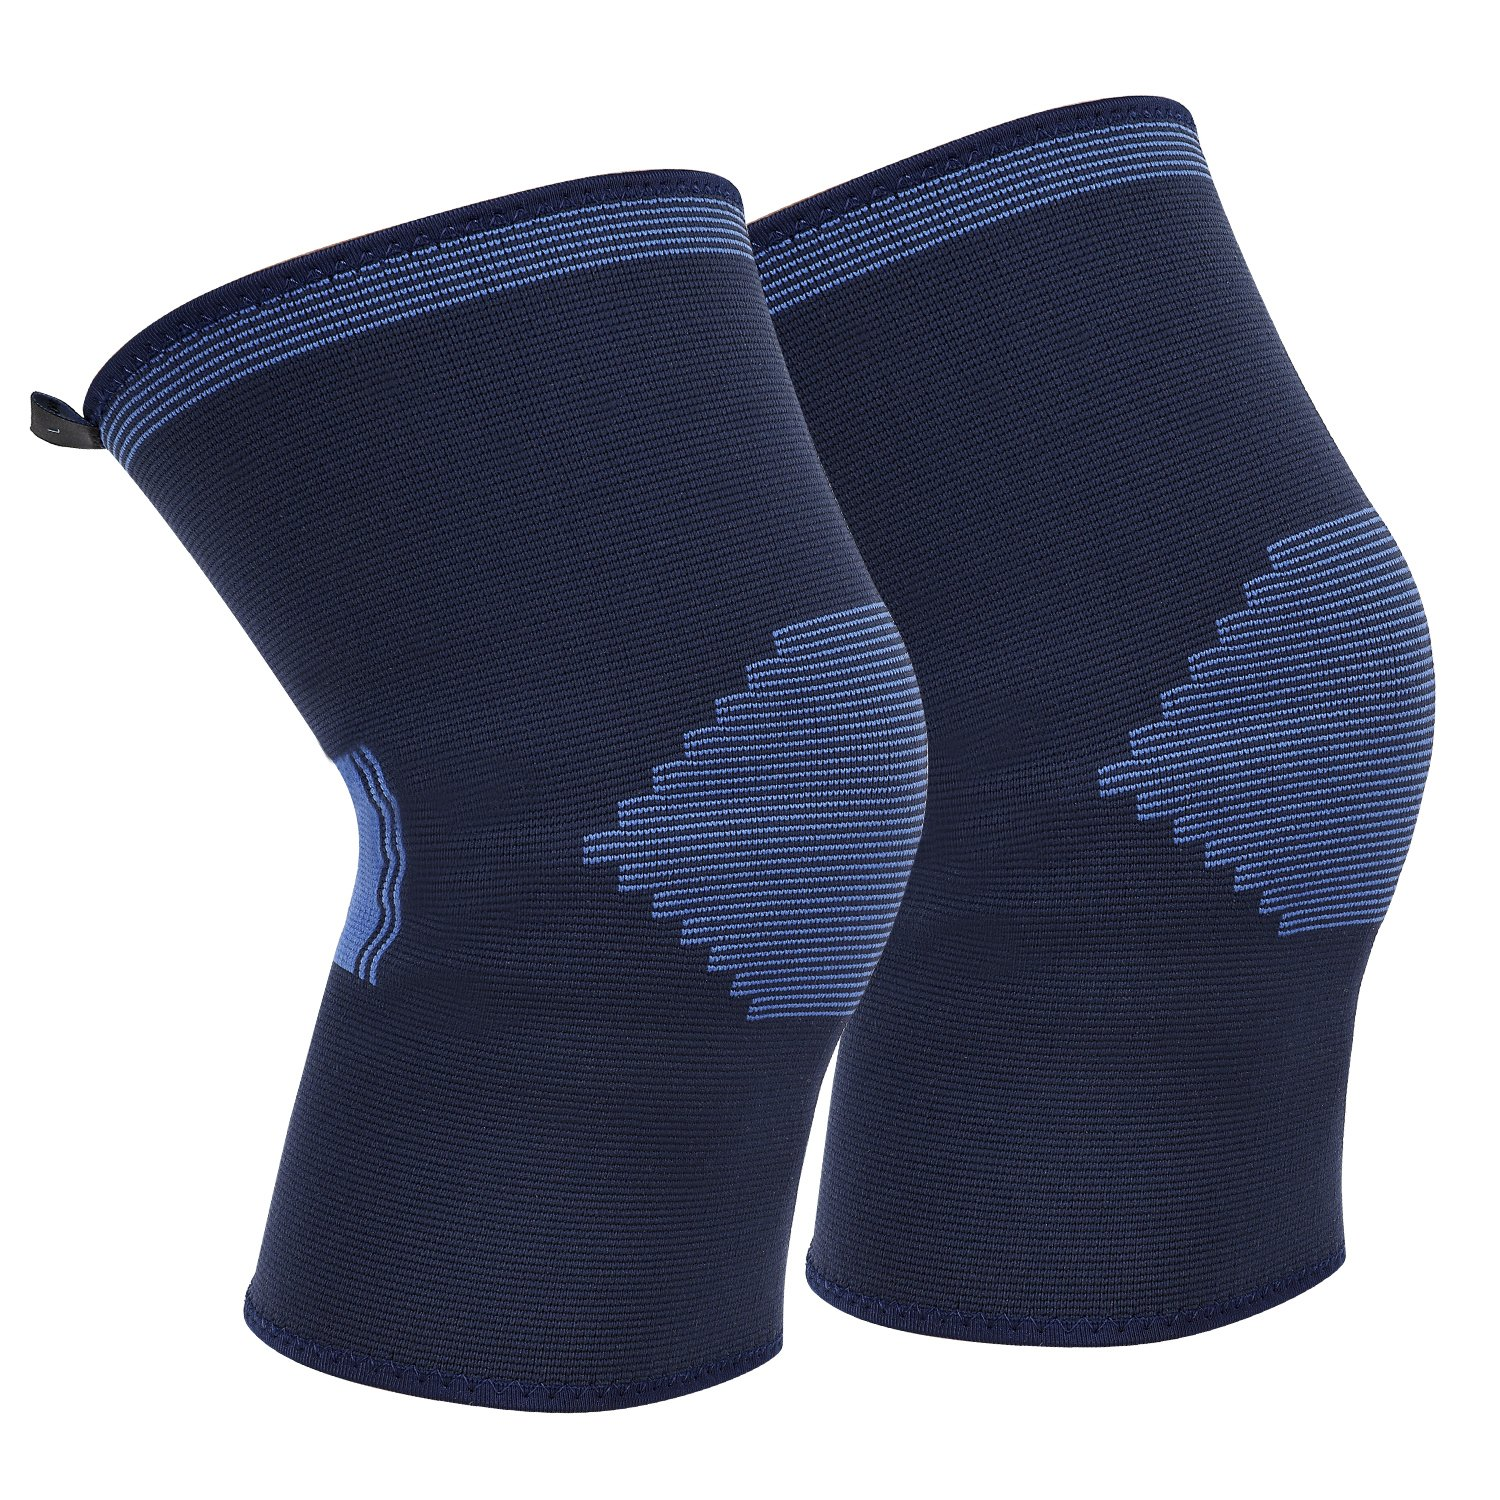 Knee Brace Compression Sleeves Support for Running/Jogging/Basketball and More Sports, suitable for Man/Women/Kids, XL